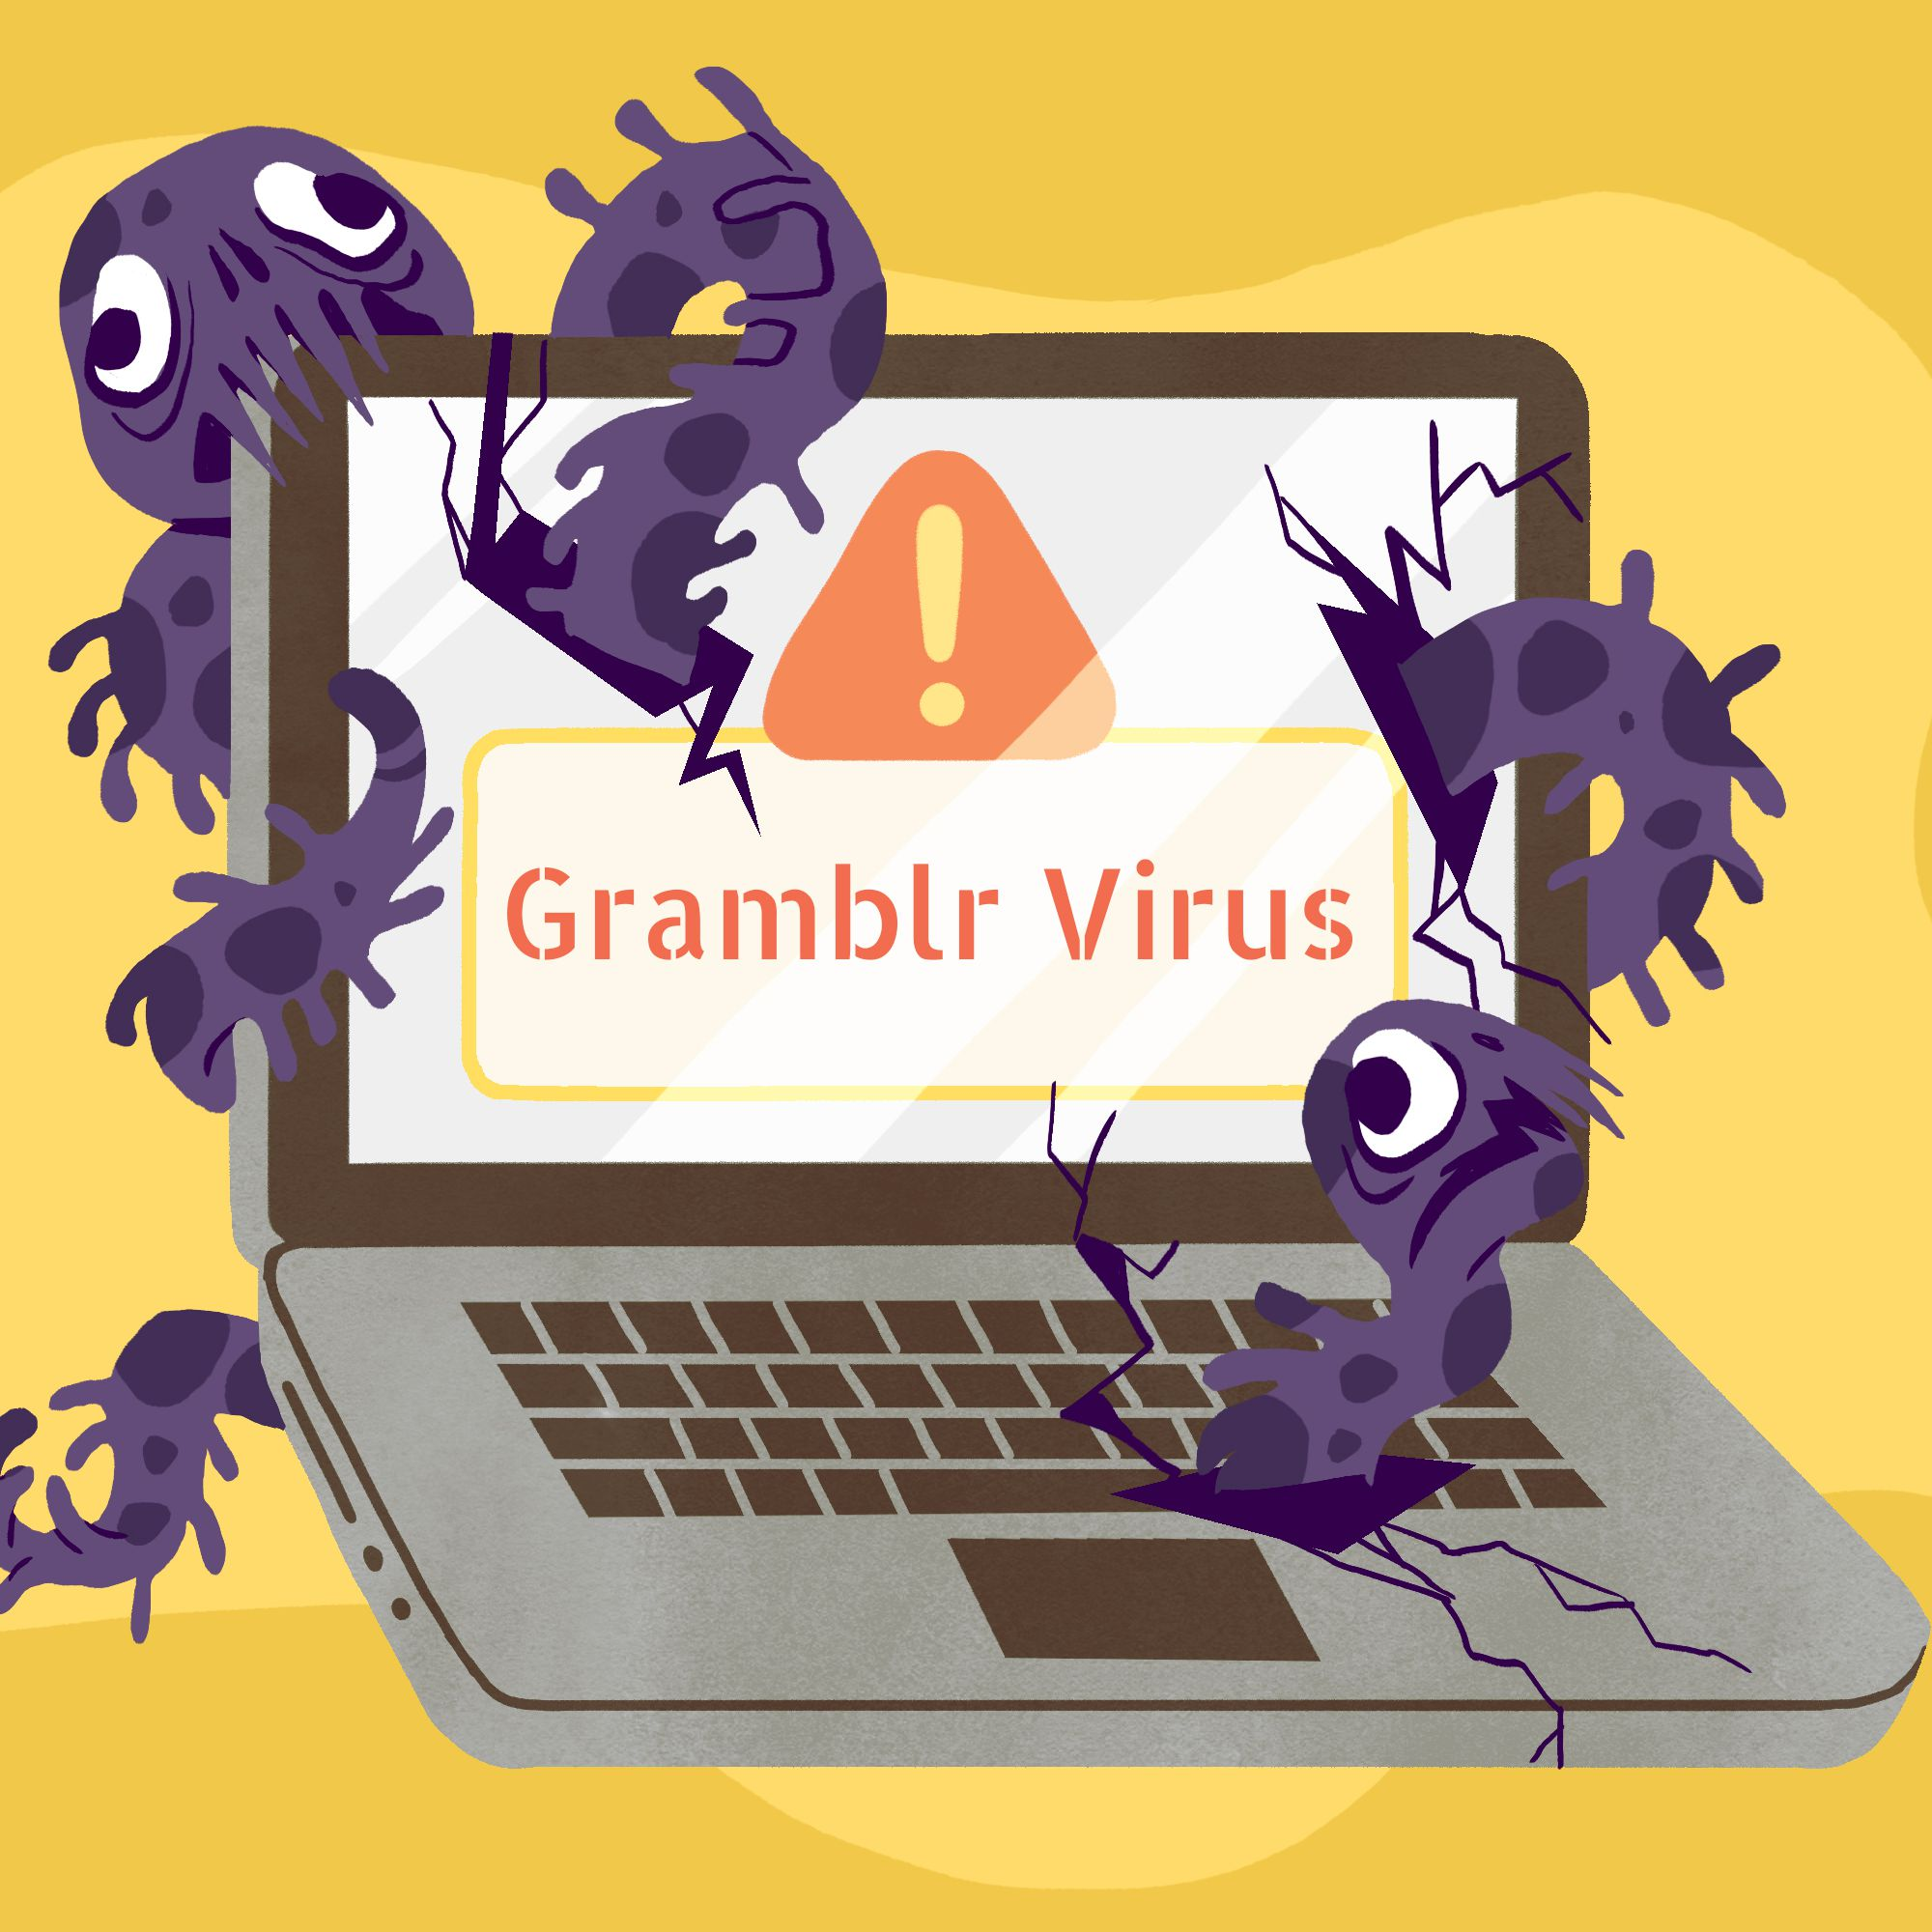 The Gramblr Virus: What It Is and How to Remove It